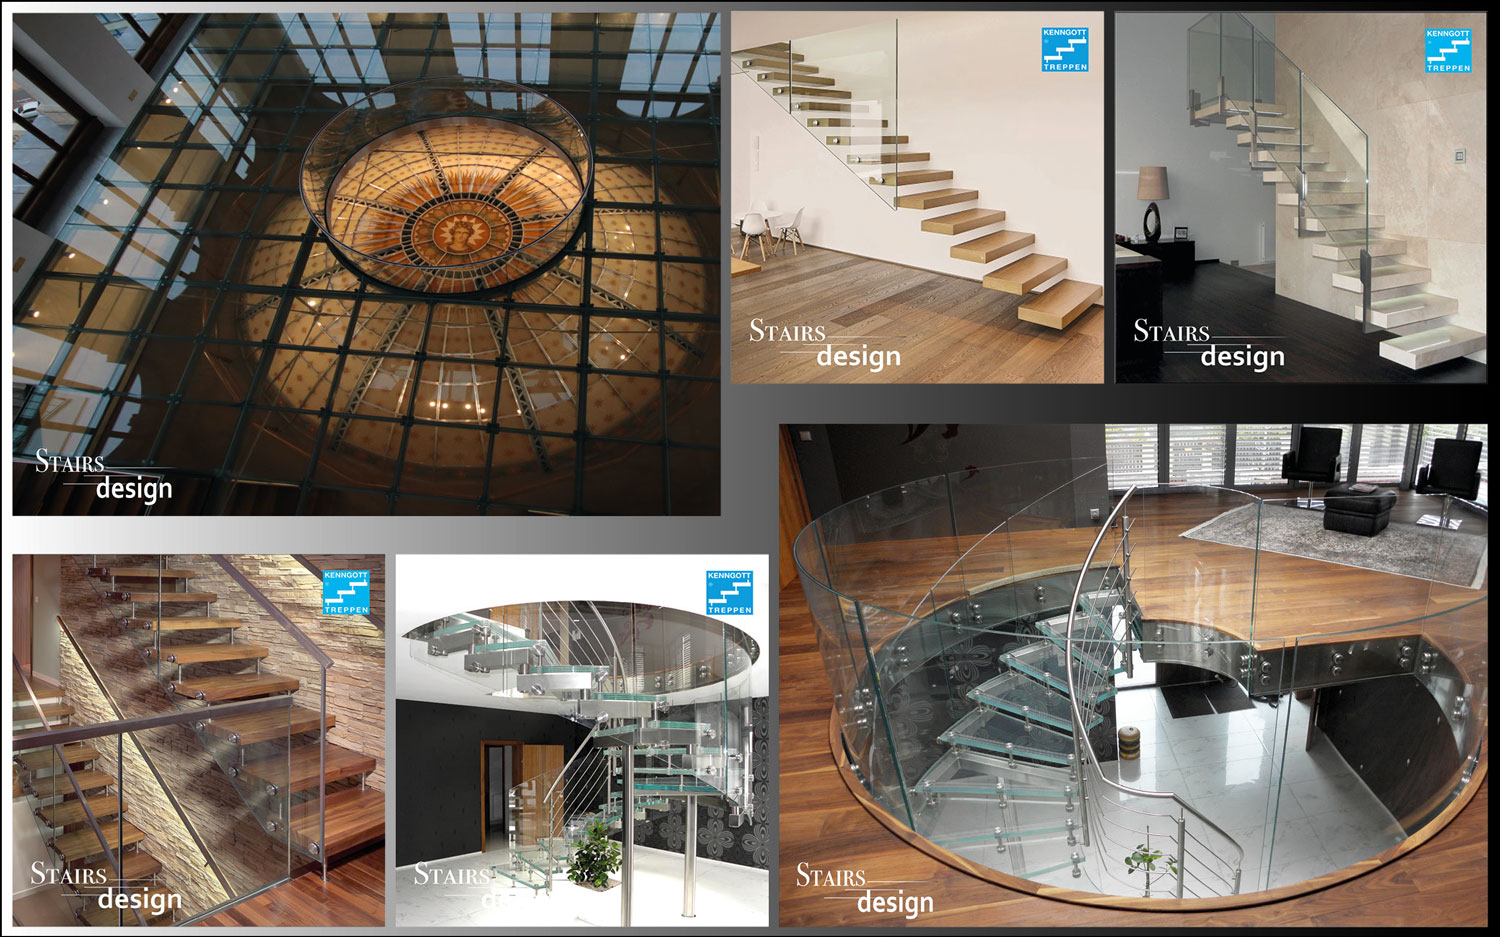 Stairs design s.r.o.